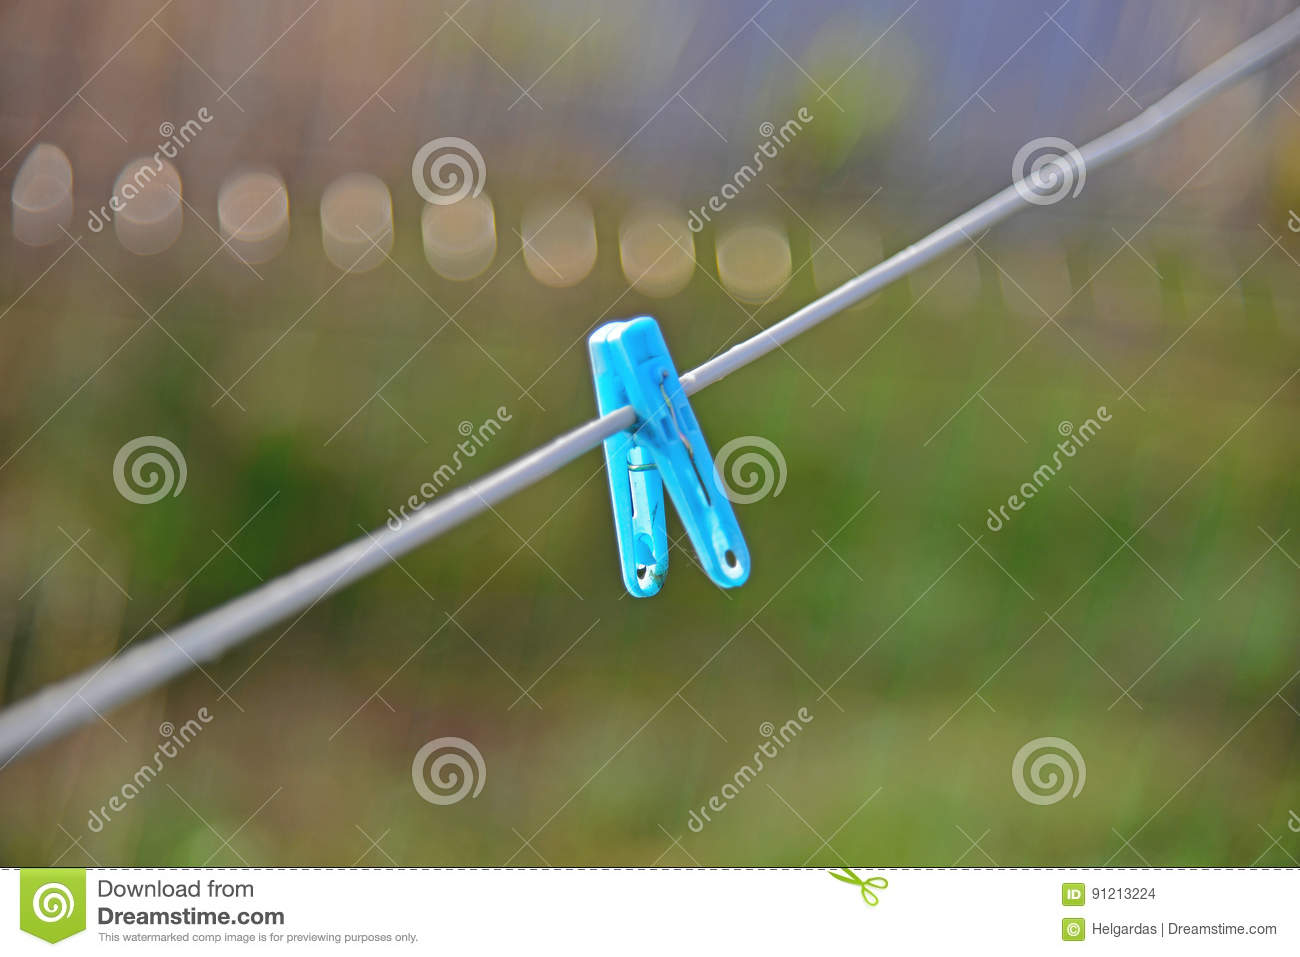 Fastener on a rope